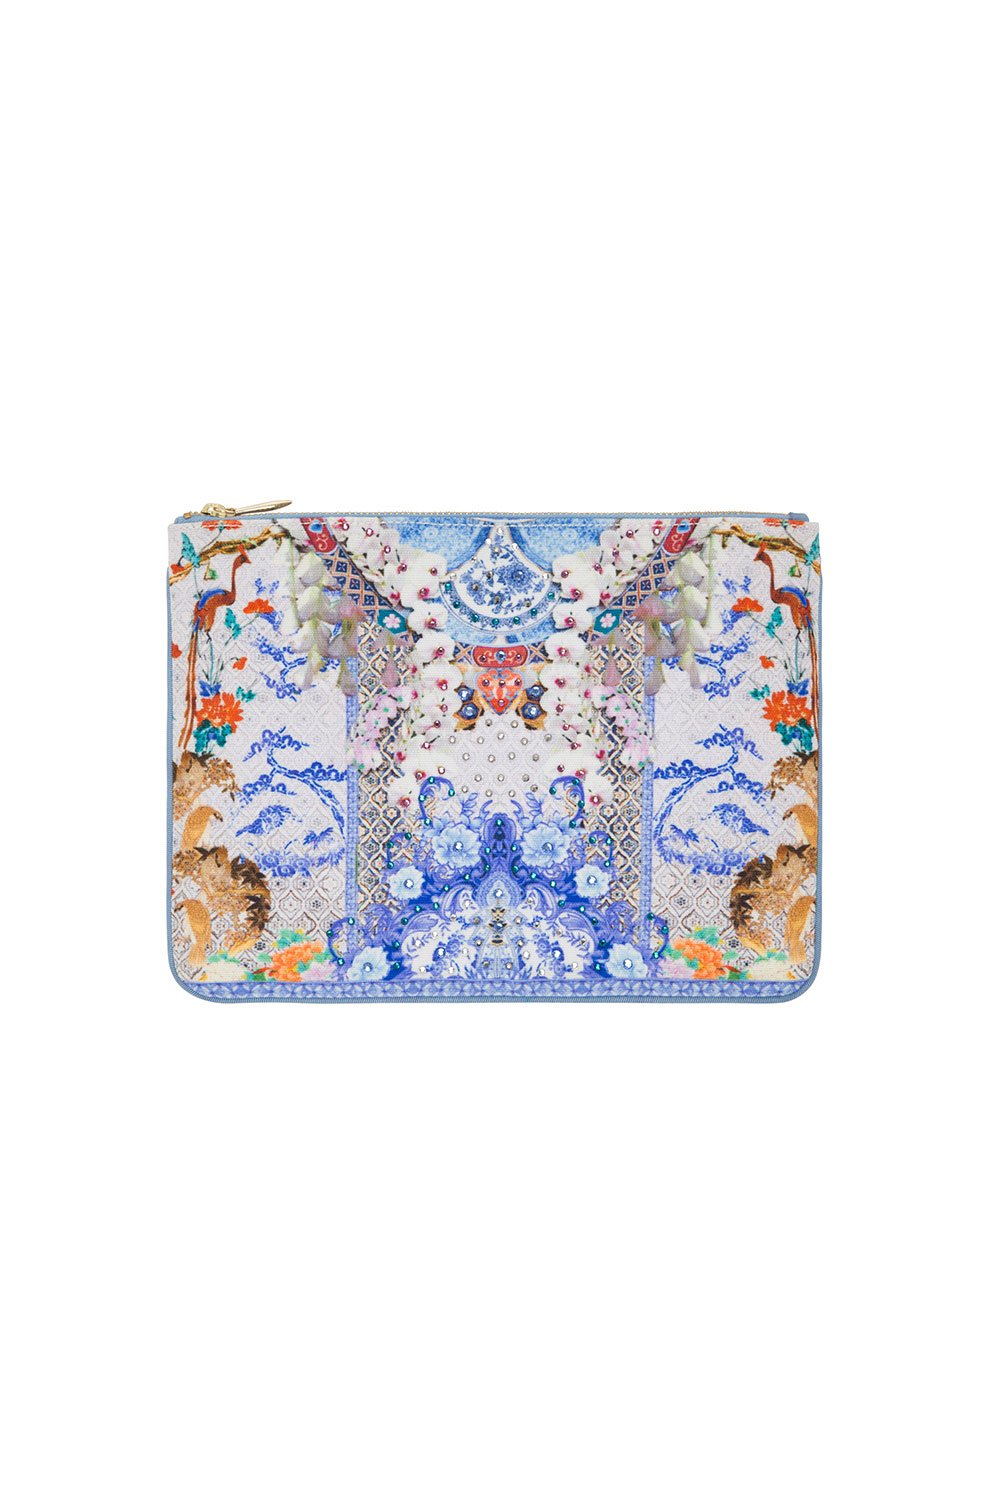 CAMILLA SMALL CANVAS CLUTCH GEISHA GATEWAYS